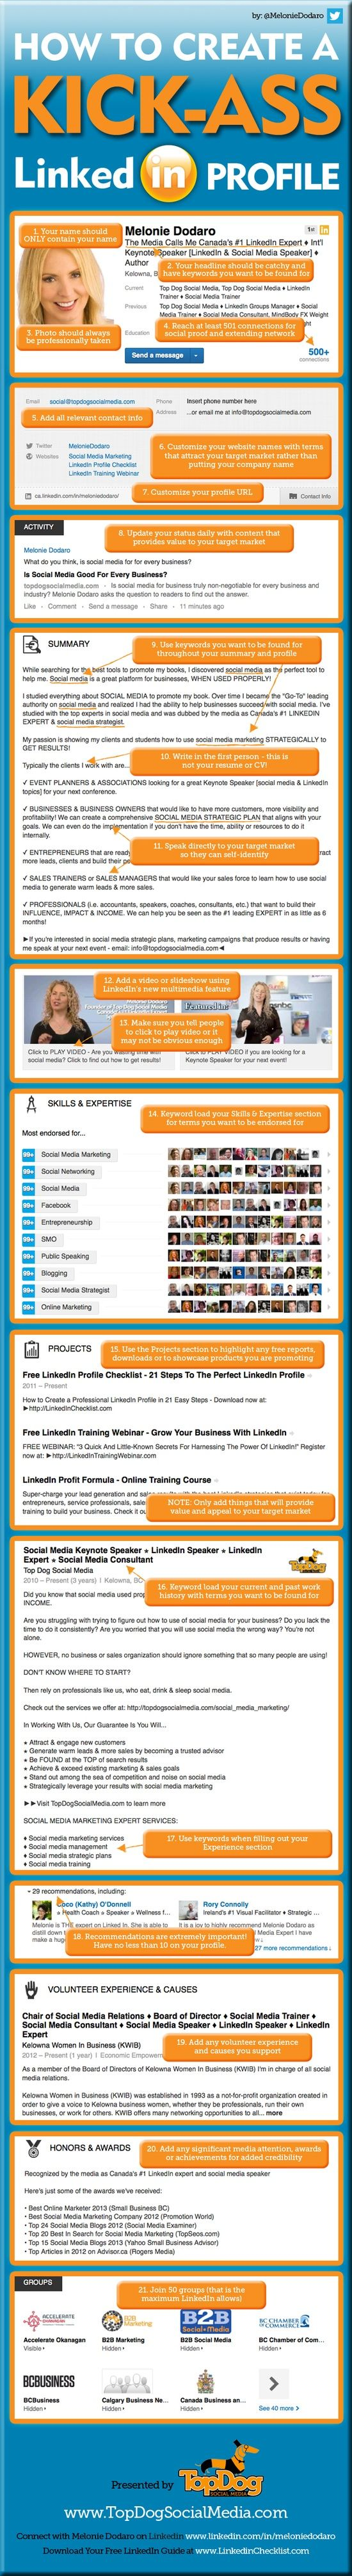 How to Create a Great LinkedIn Profile #Infographic